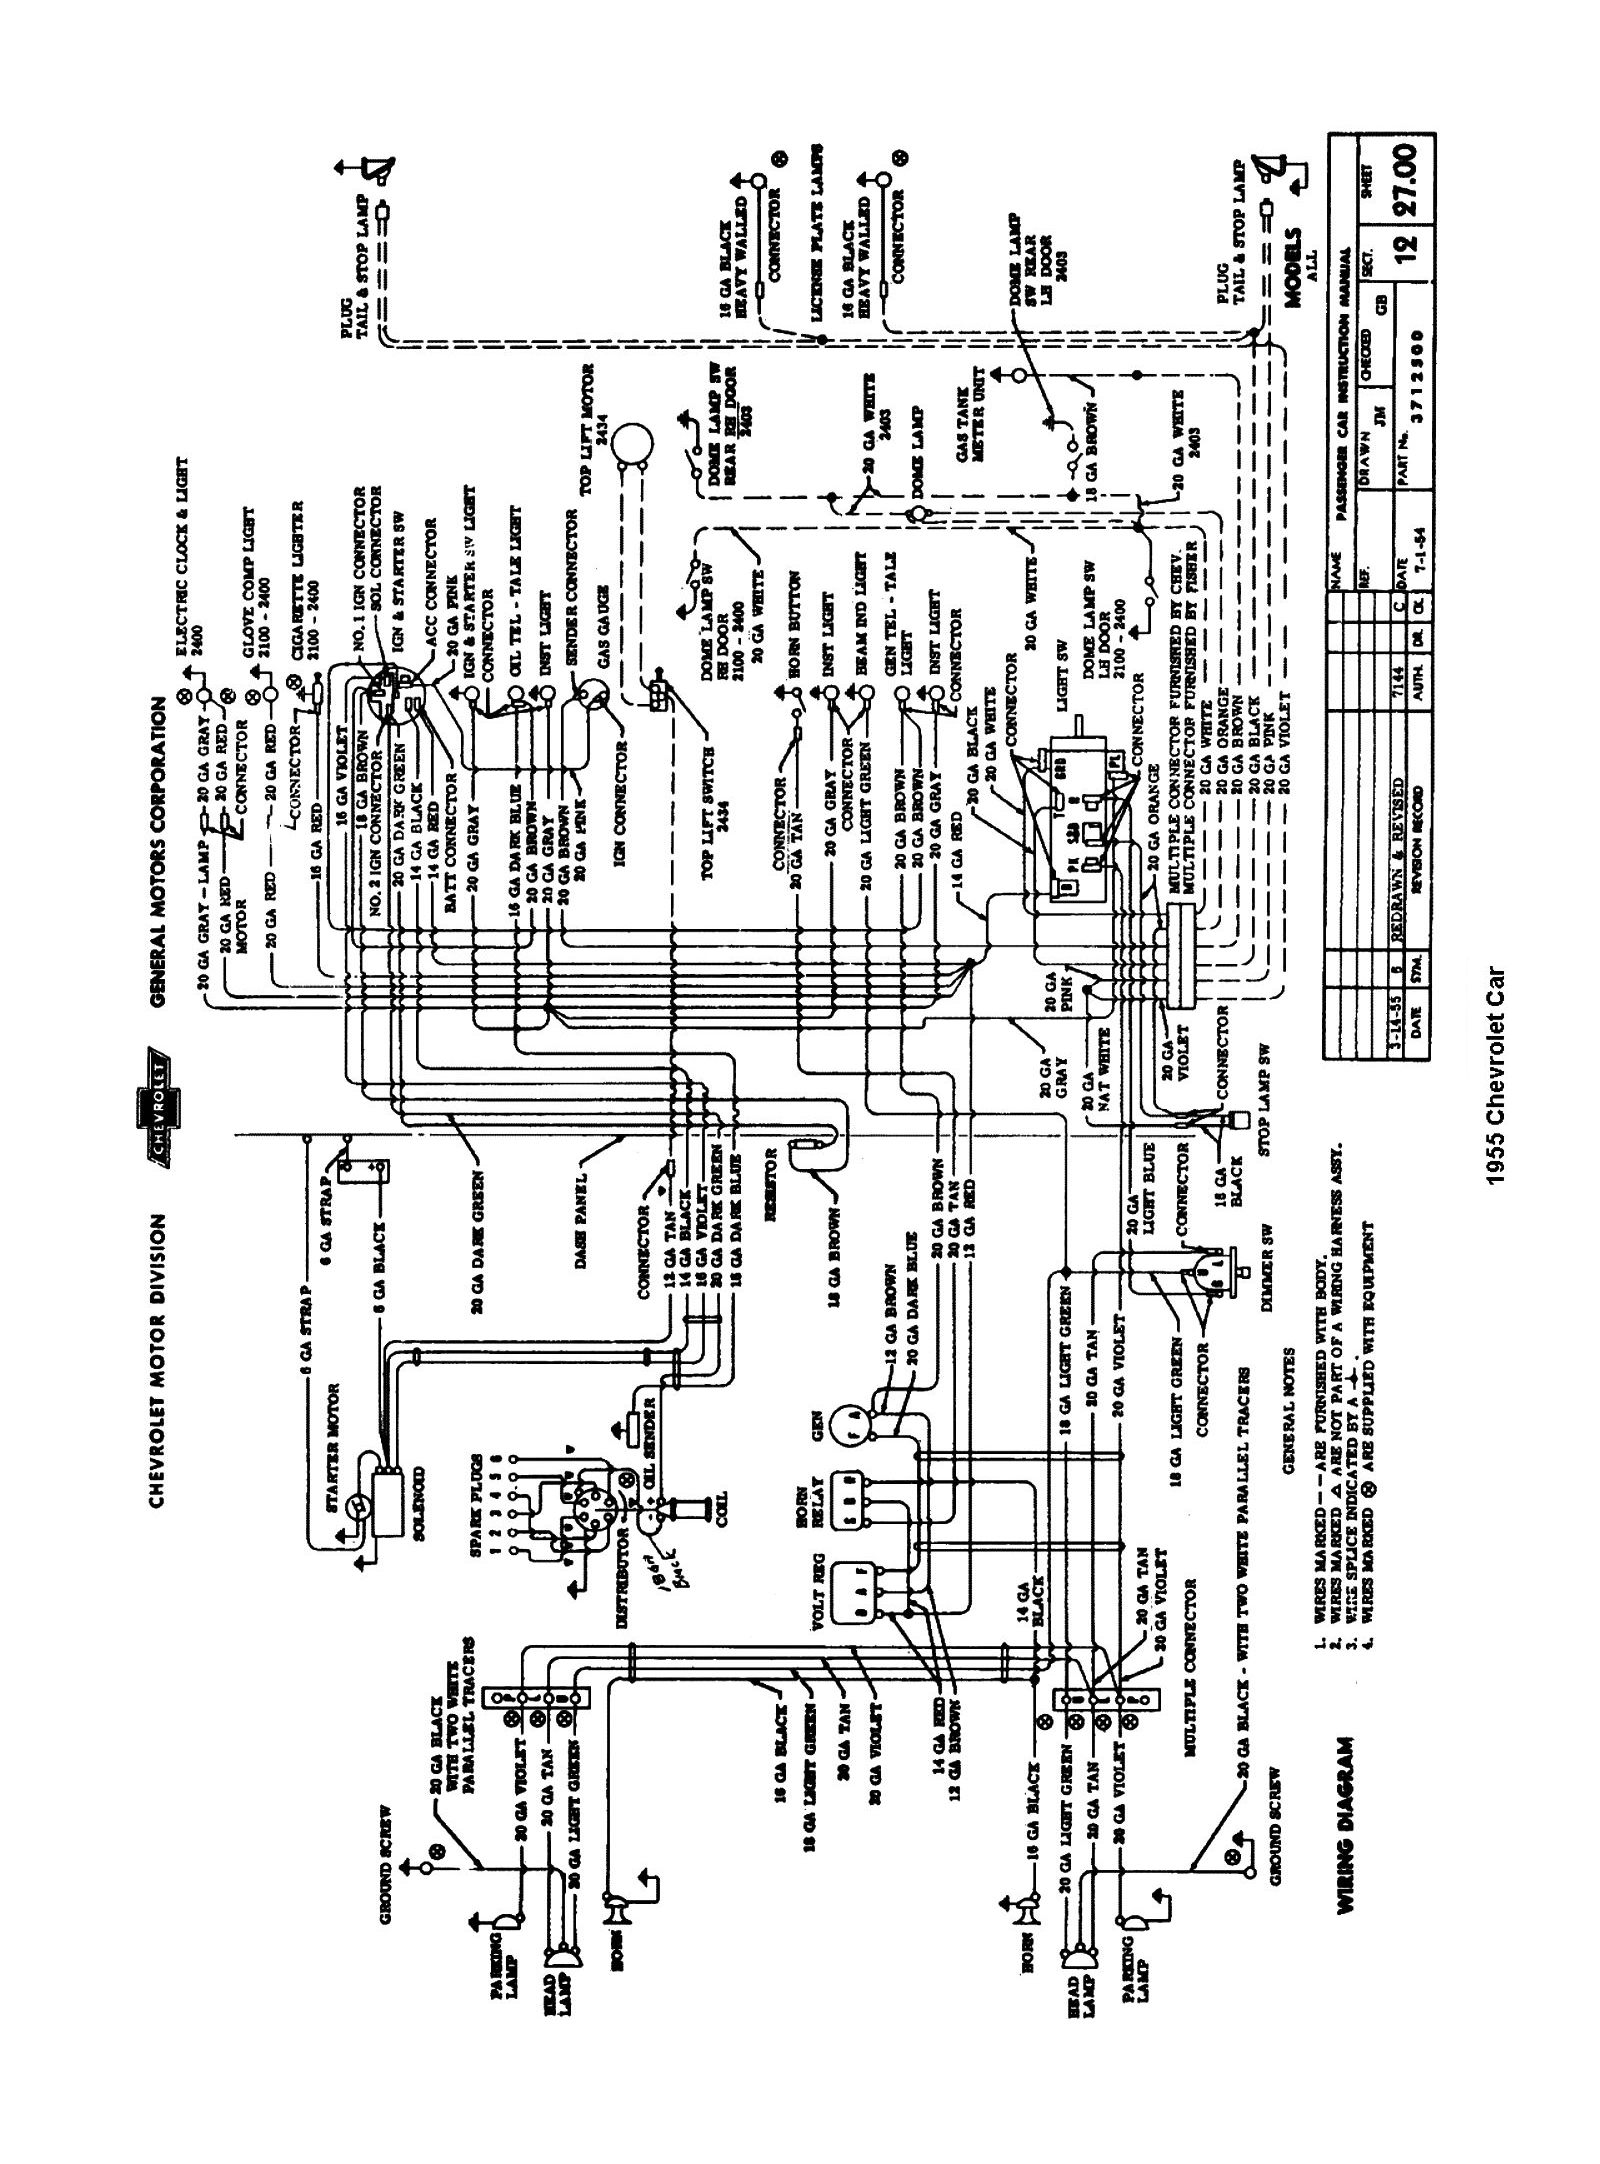 55car1 1955 plymouth wiring diagram 1955 wiring diagrams instruction 66 Chevy Headlight Switch Wiring Diagram at reclaimingppi.co